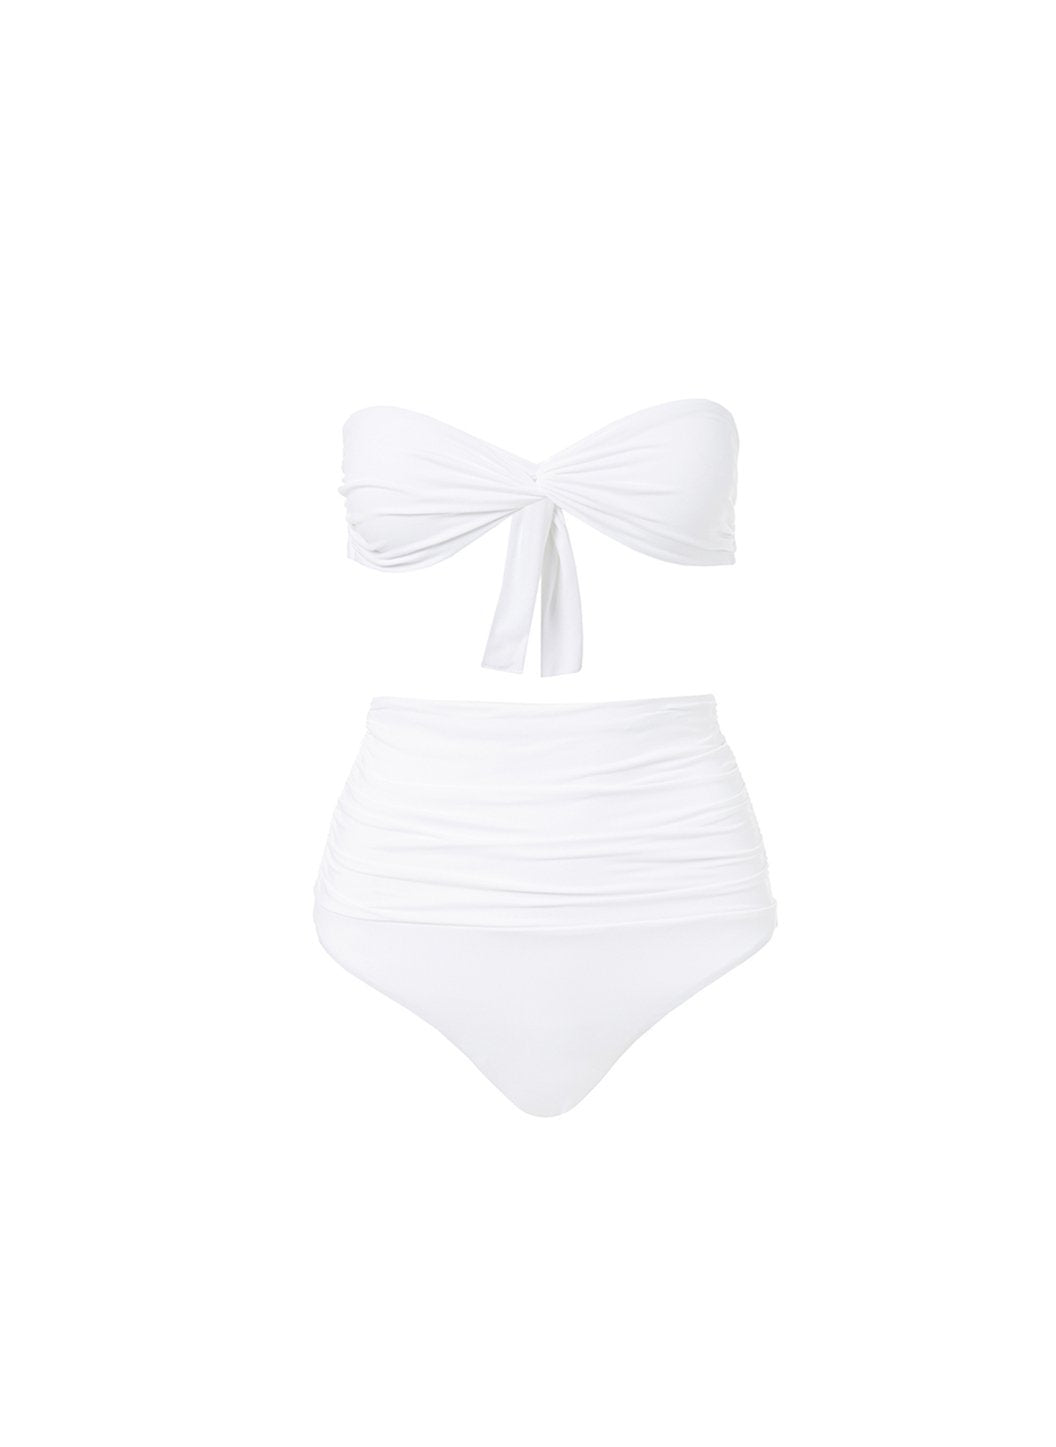 lyon white highwaisted bandeau bikini 2019